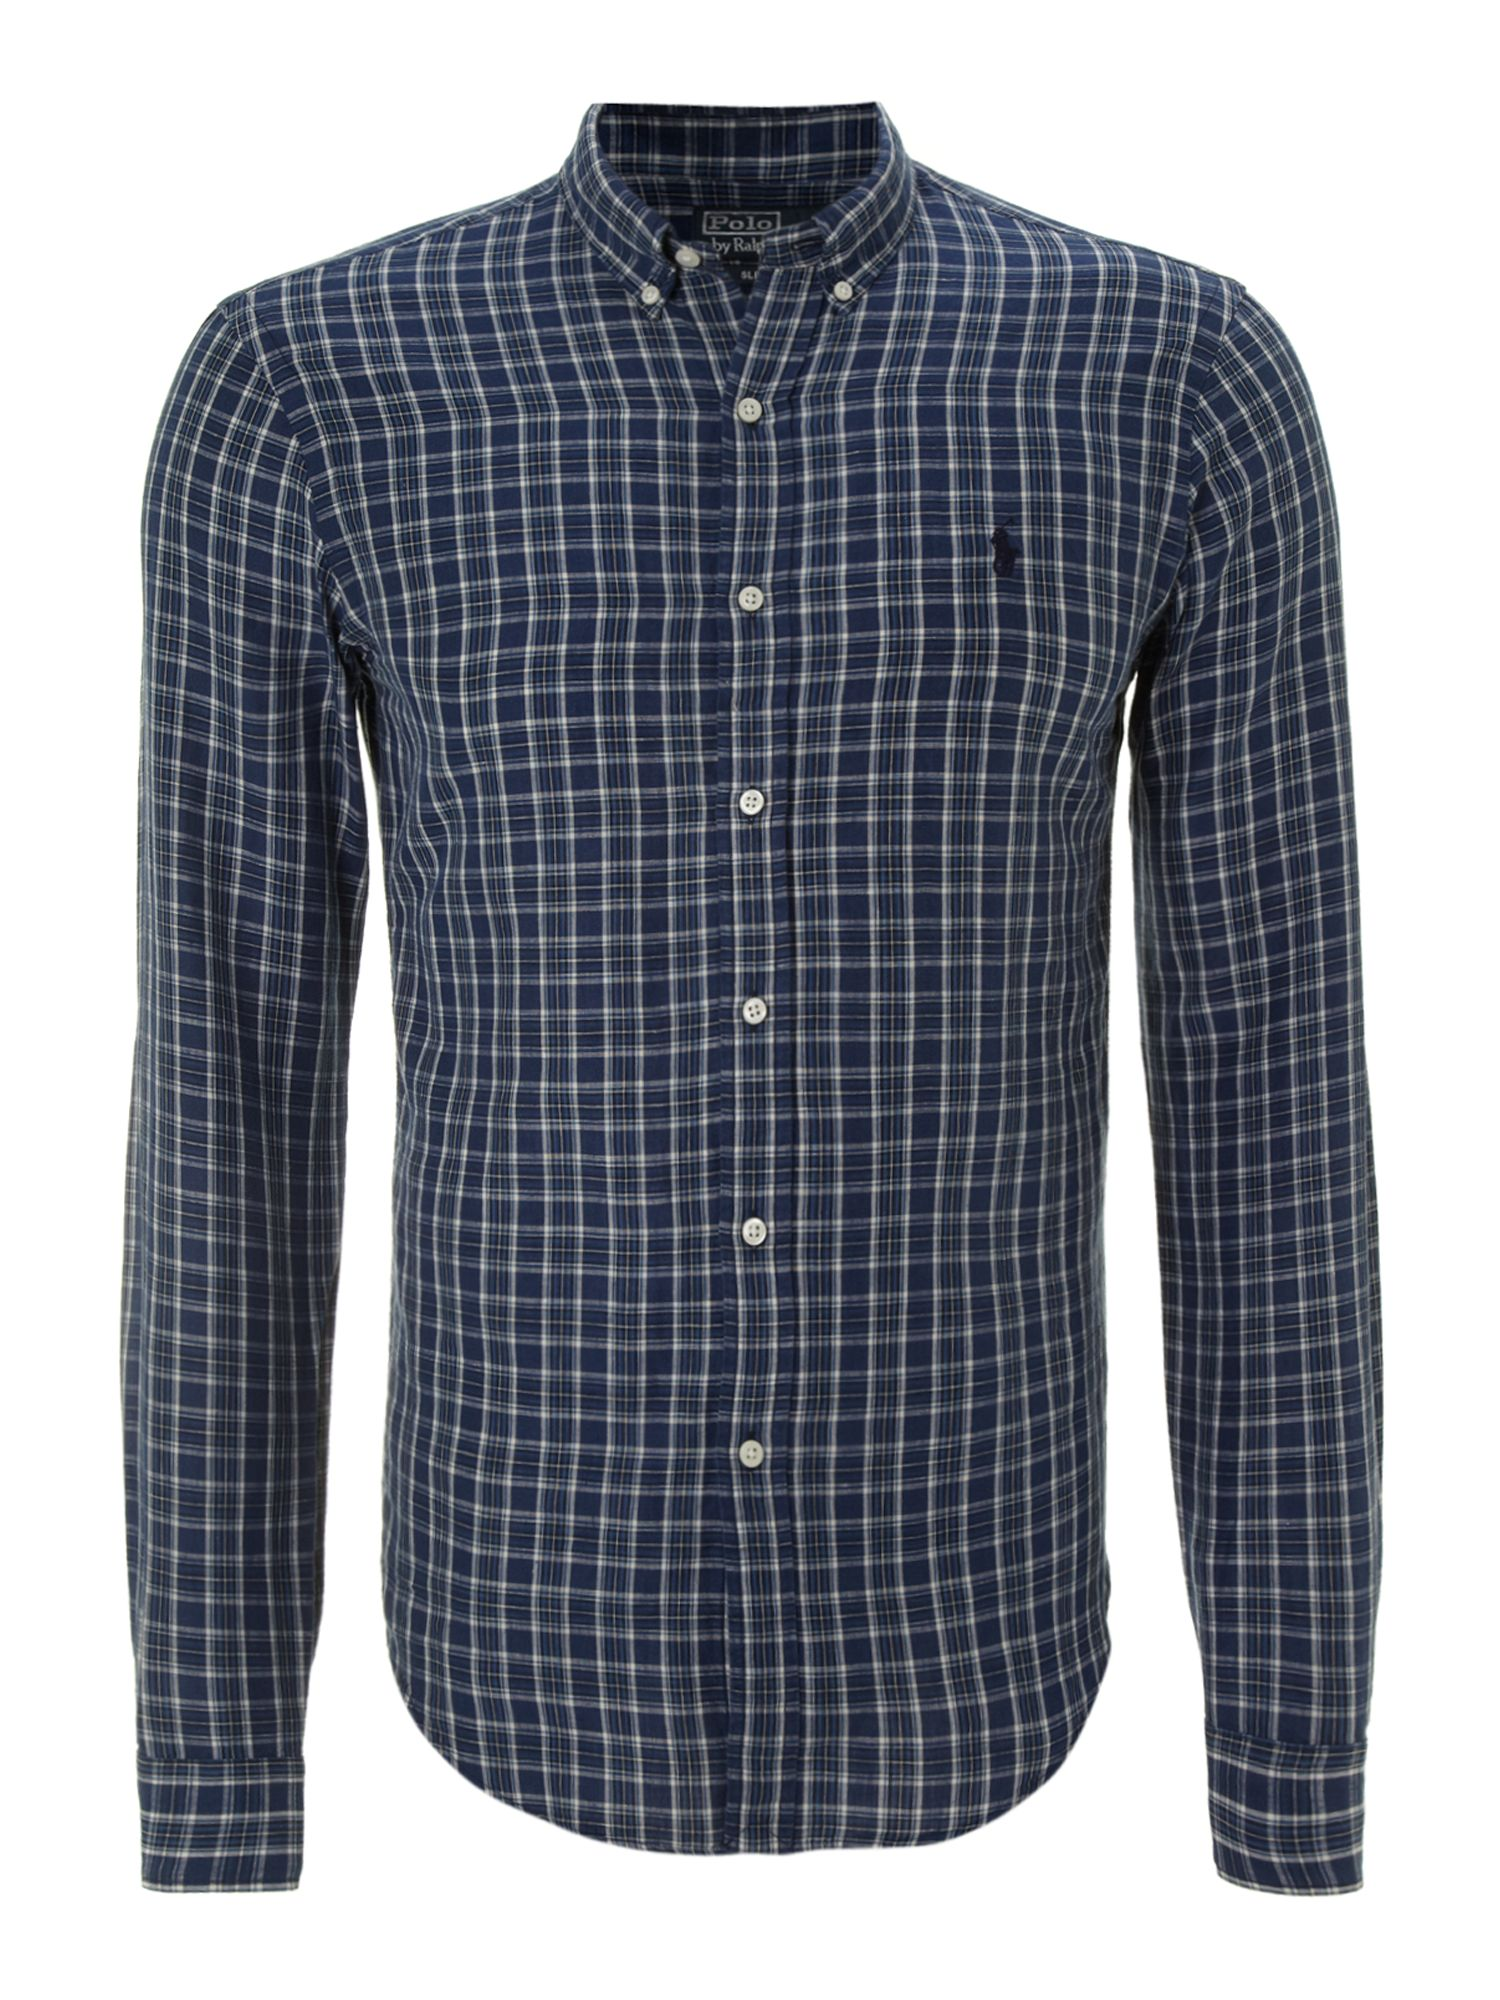 Classic long sleeved slim fit shirt